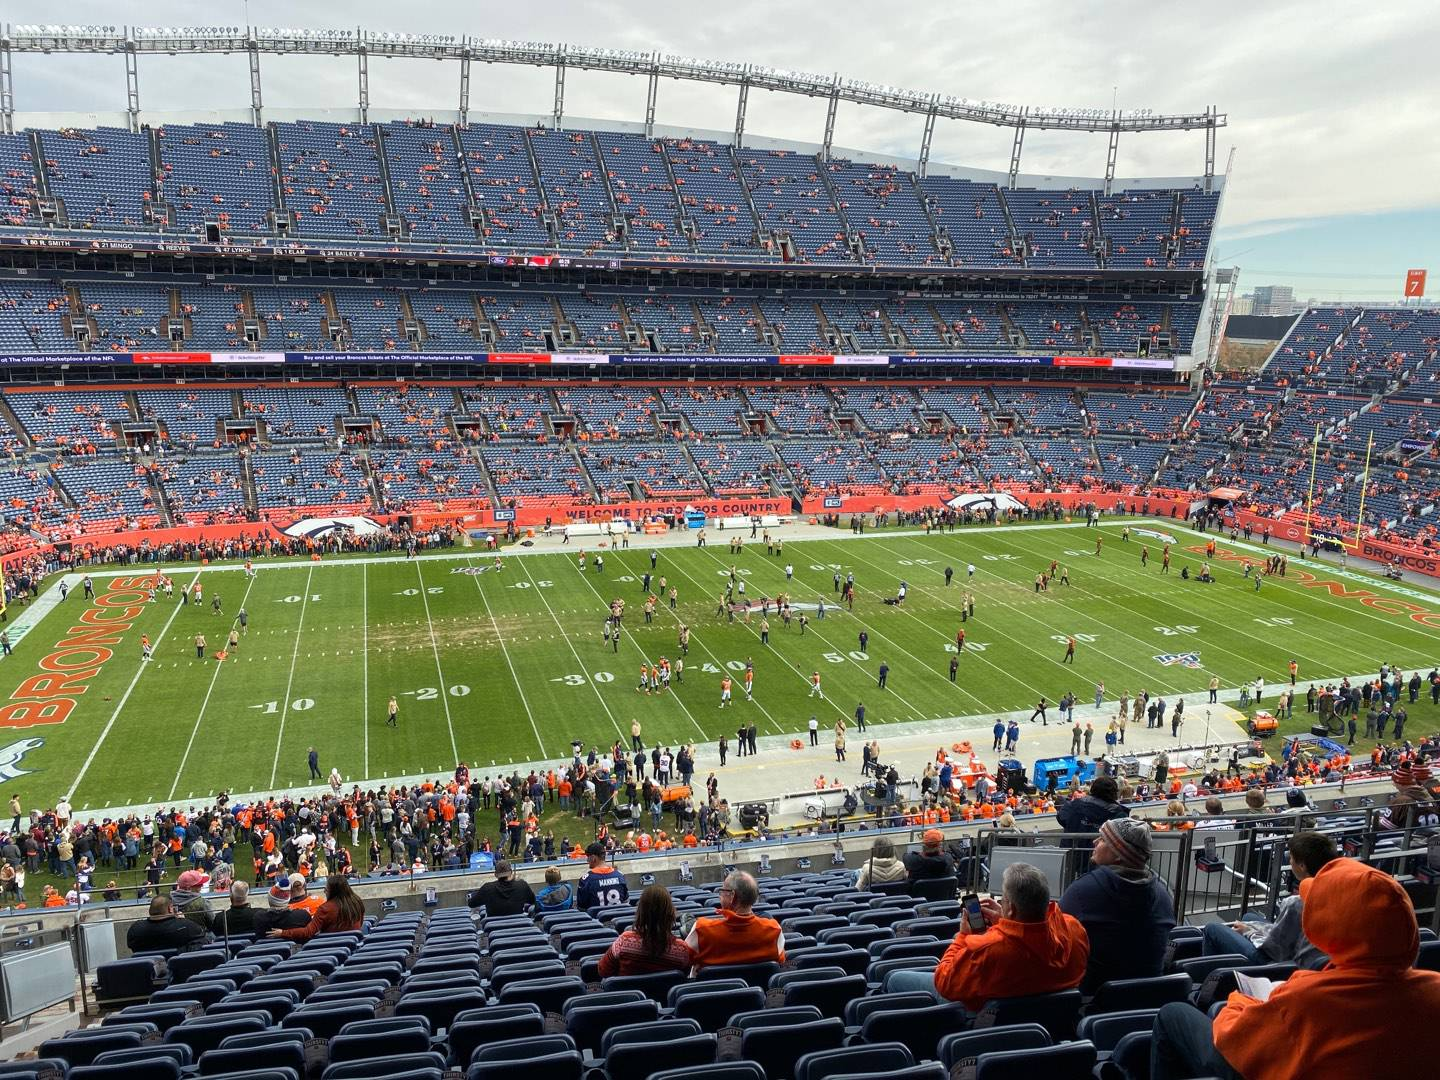 Empower Field at Mile High Stadium Section 312 Row 16 Seat 10